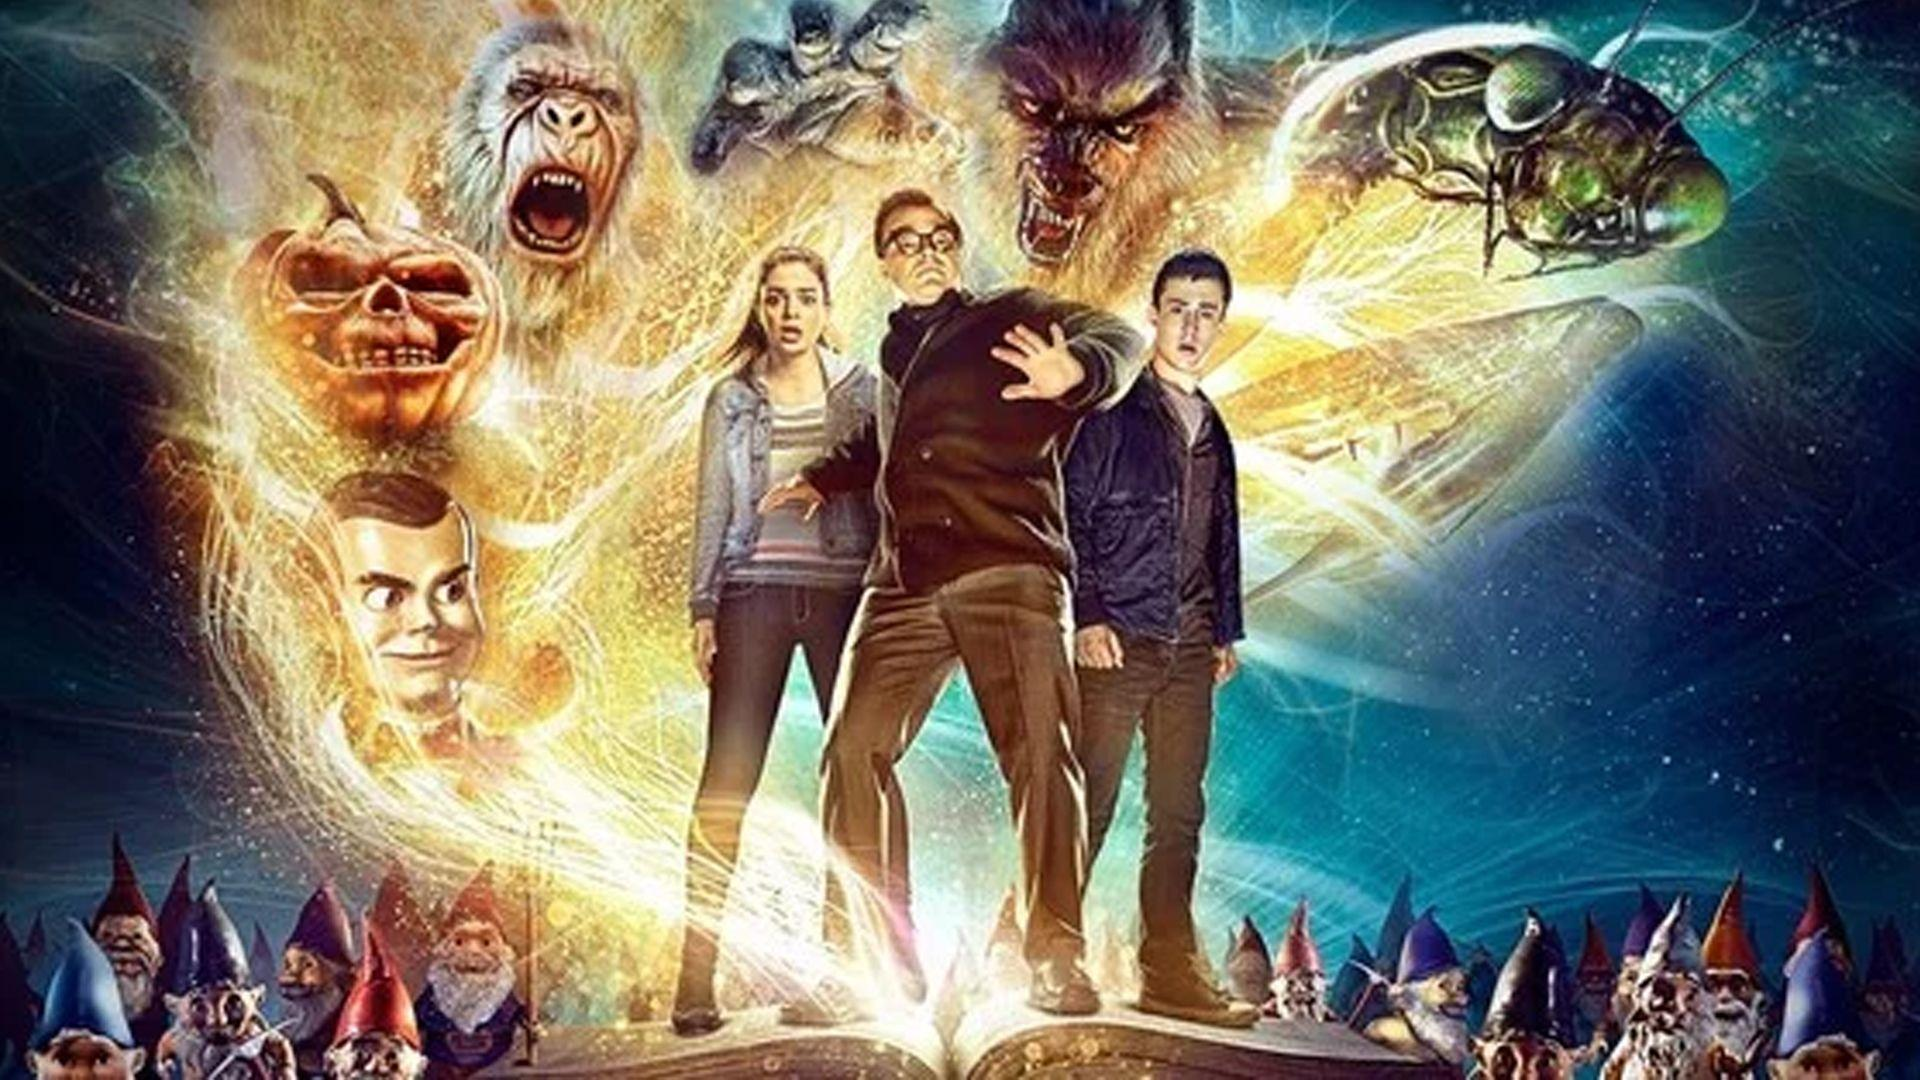 Goosebumps 2 Haunted Halloween Wallpapers Wallpaper Cave